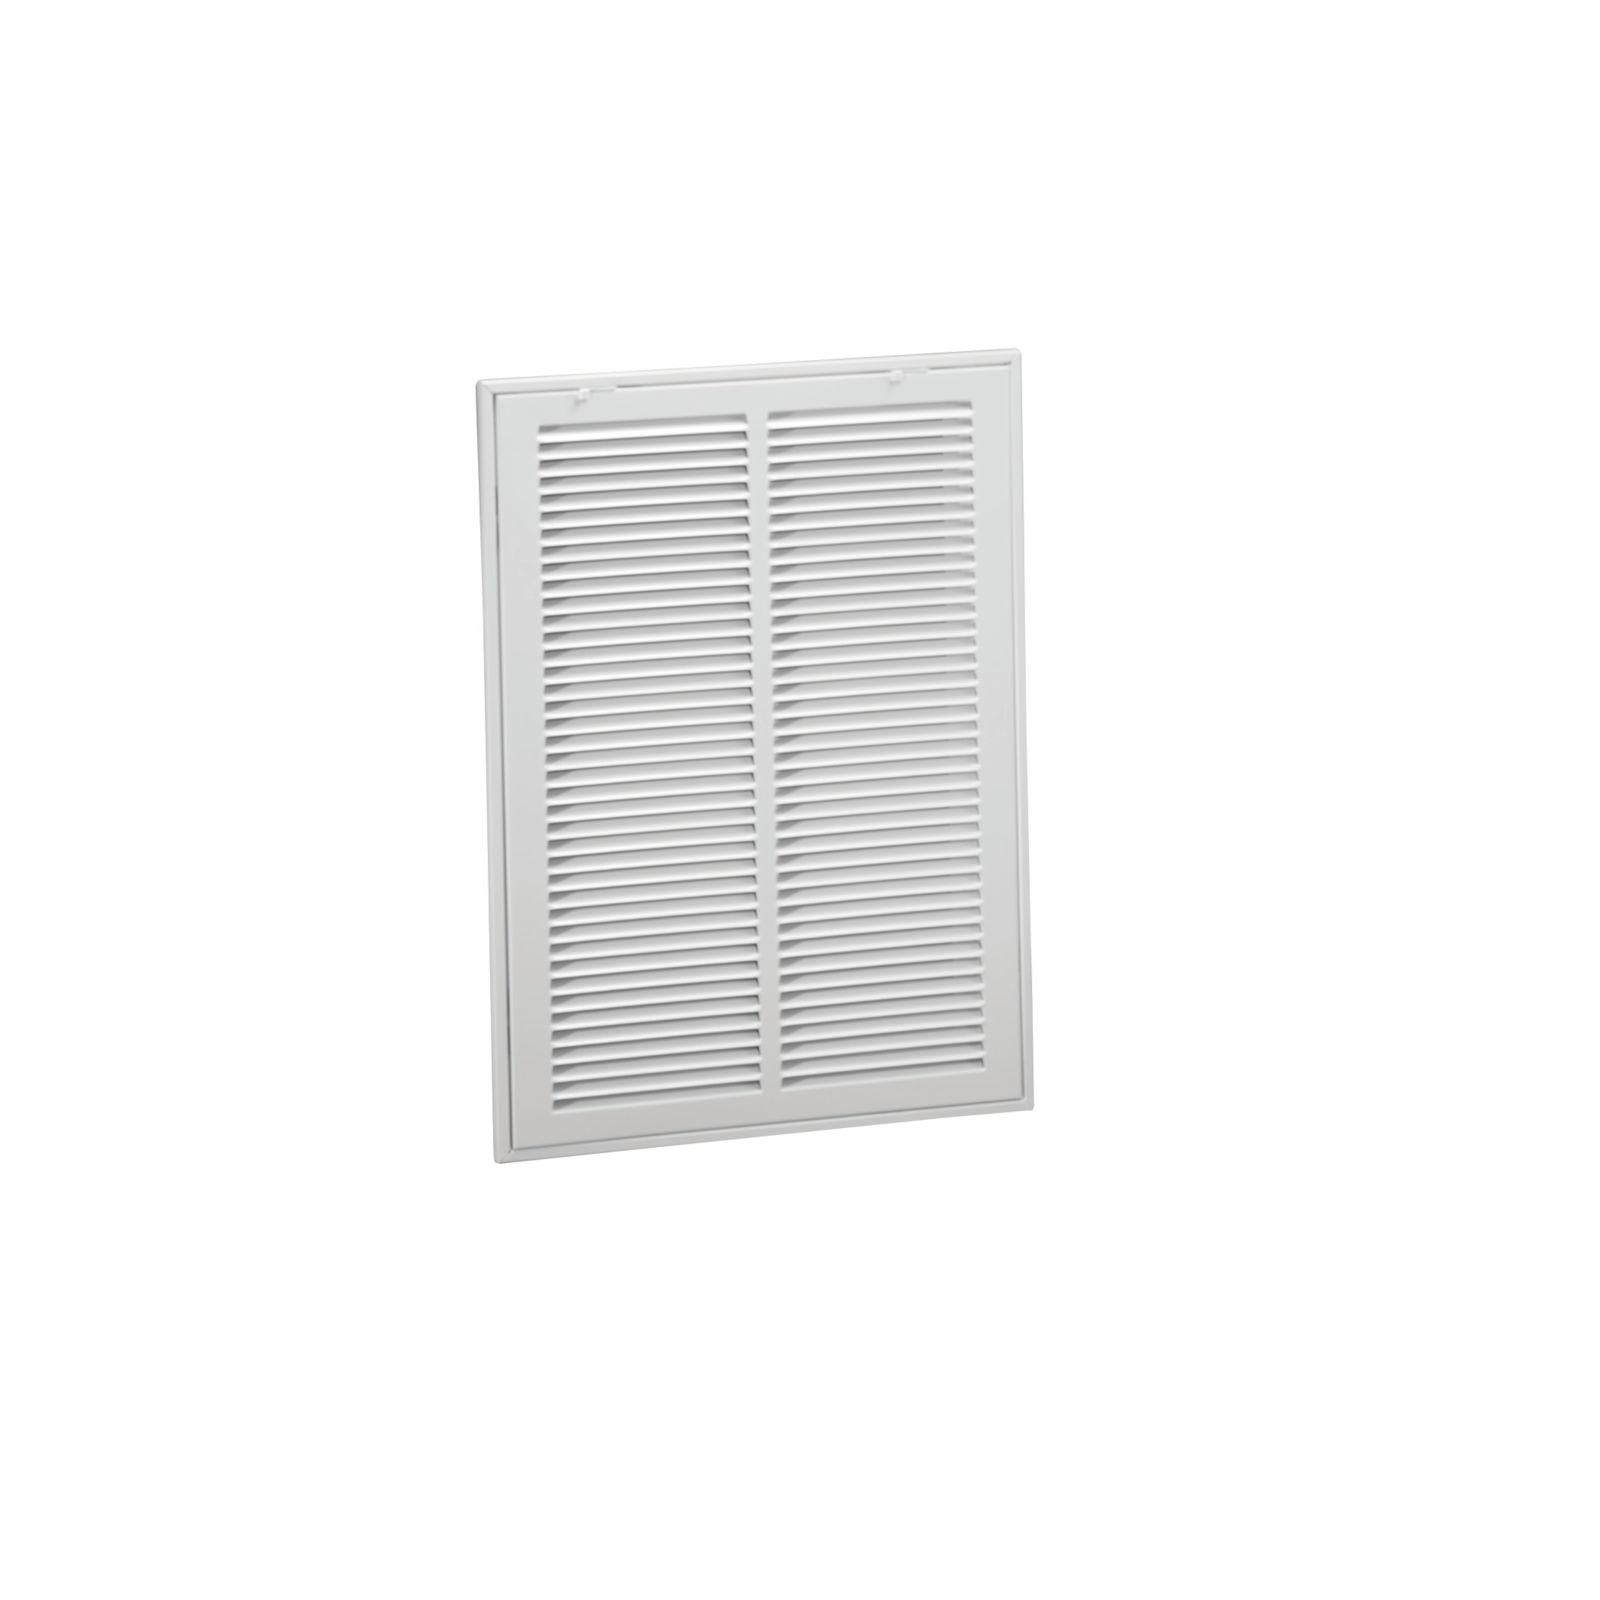 "Hart & Cooley 043501 - #673 Steel Return Air Filter Grille, White Finish, 12"" X 12"""